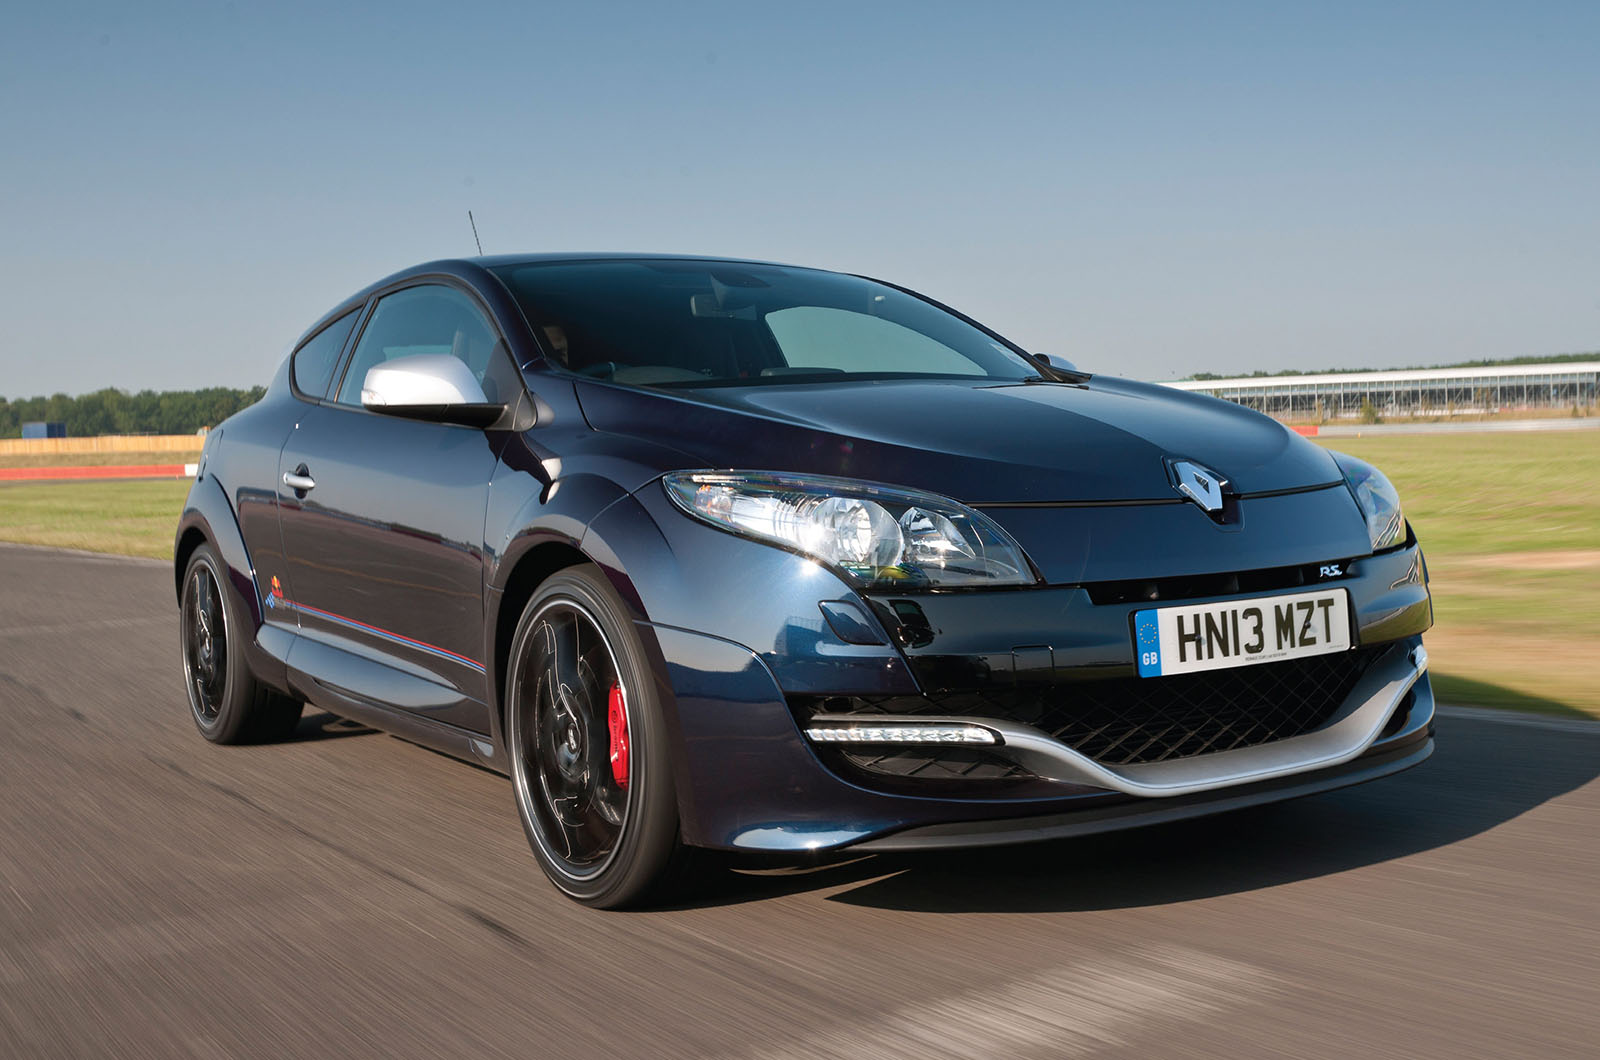 renault reveals new clio and megane performance models. Black Bedroom Furniture Sets. Home Design Ideas